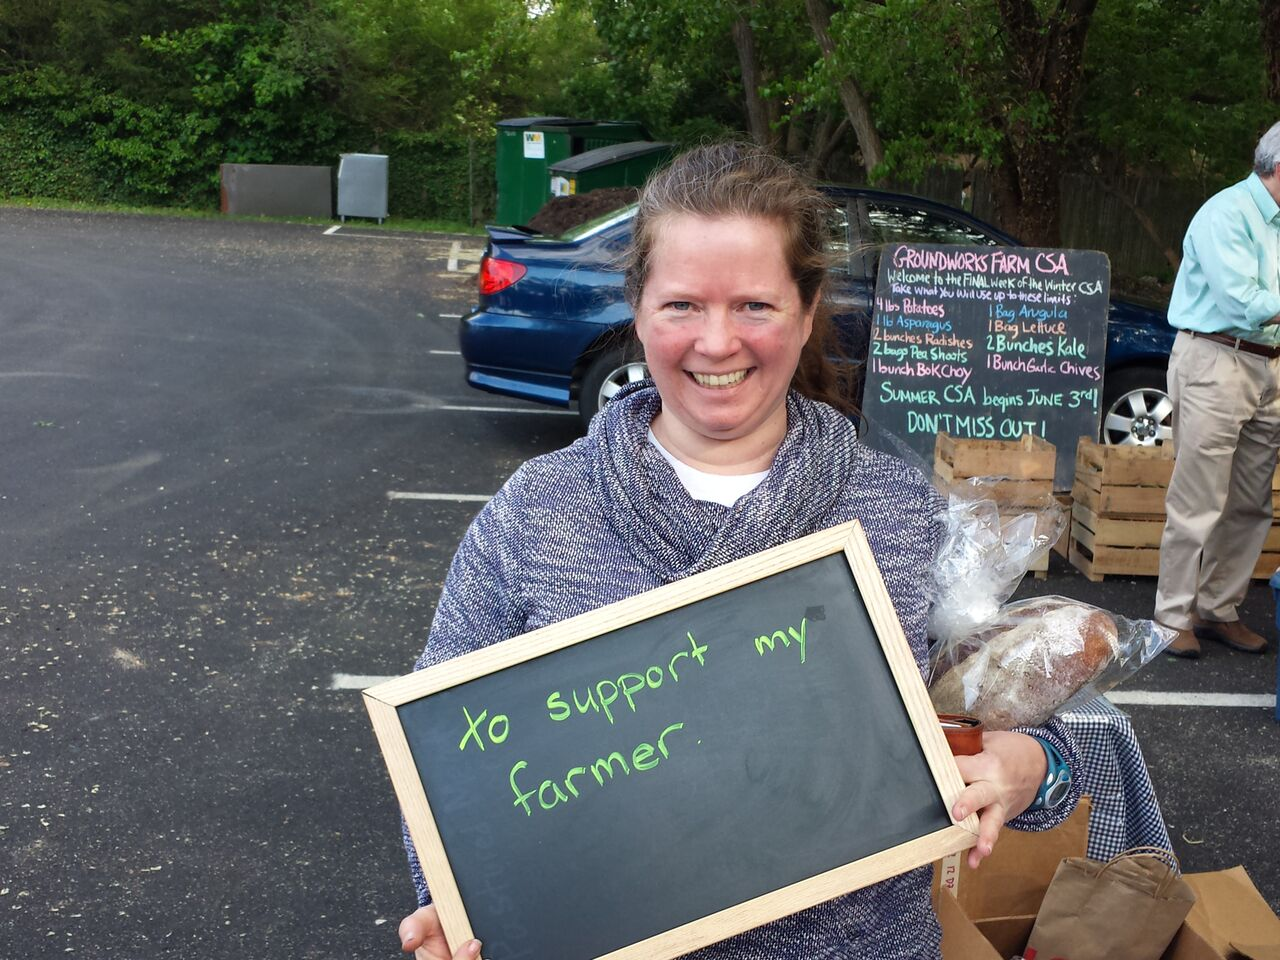 Groundworks Farm | CSA Shares for Maryland, DC and Northern